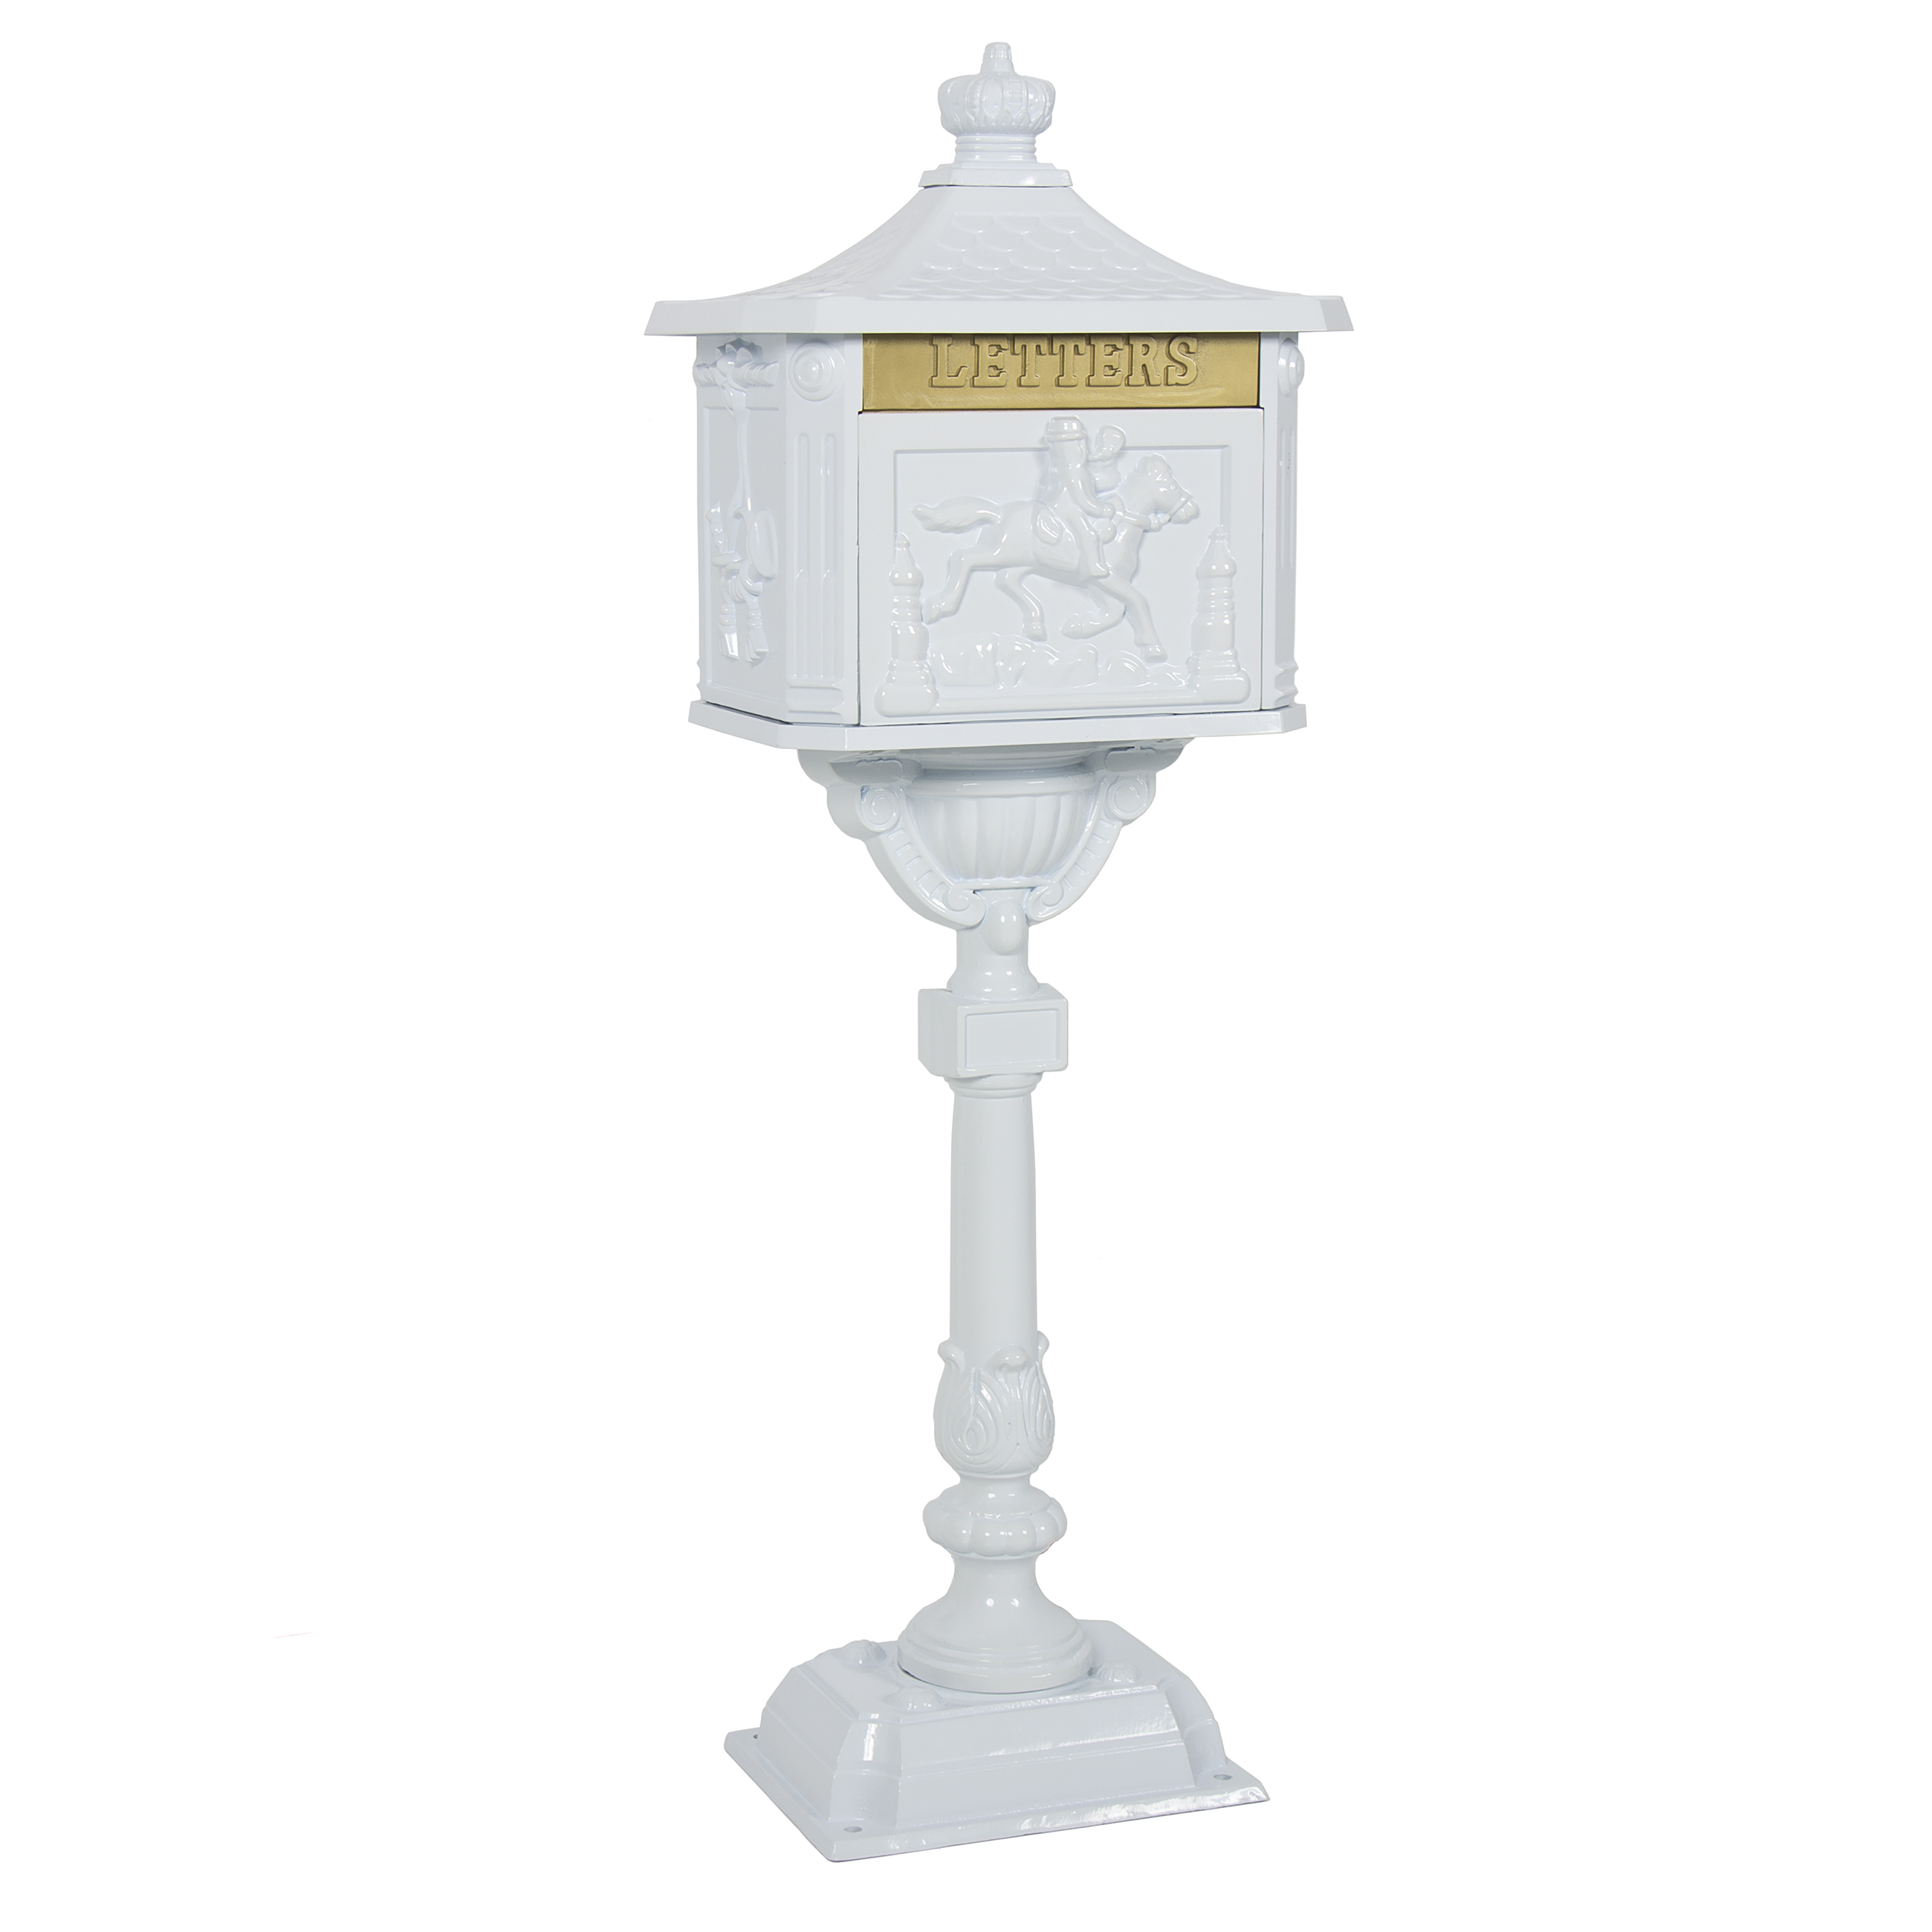 Mailbox Cast Aluminum White Mail Box Postal Box Security Heavy Duty New by SKY